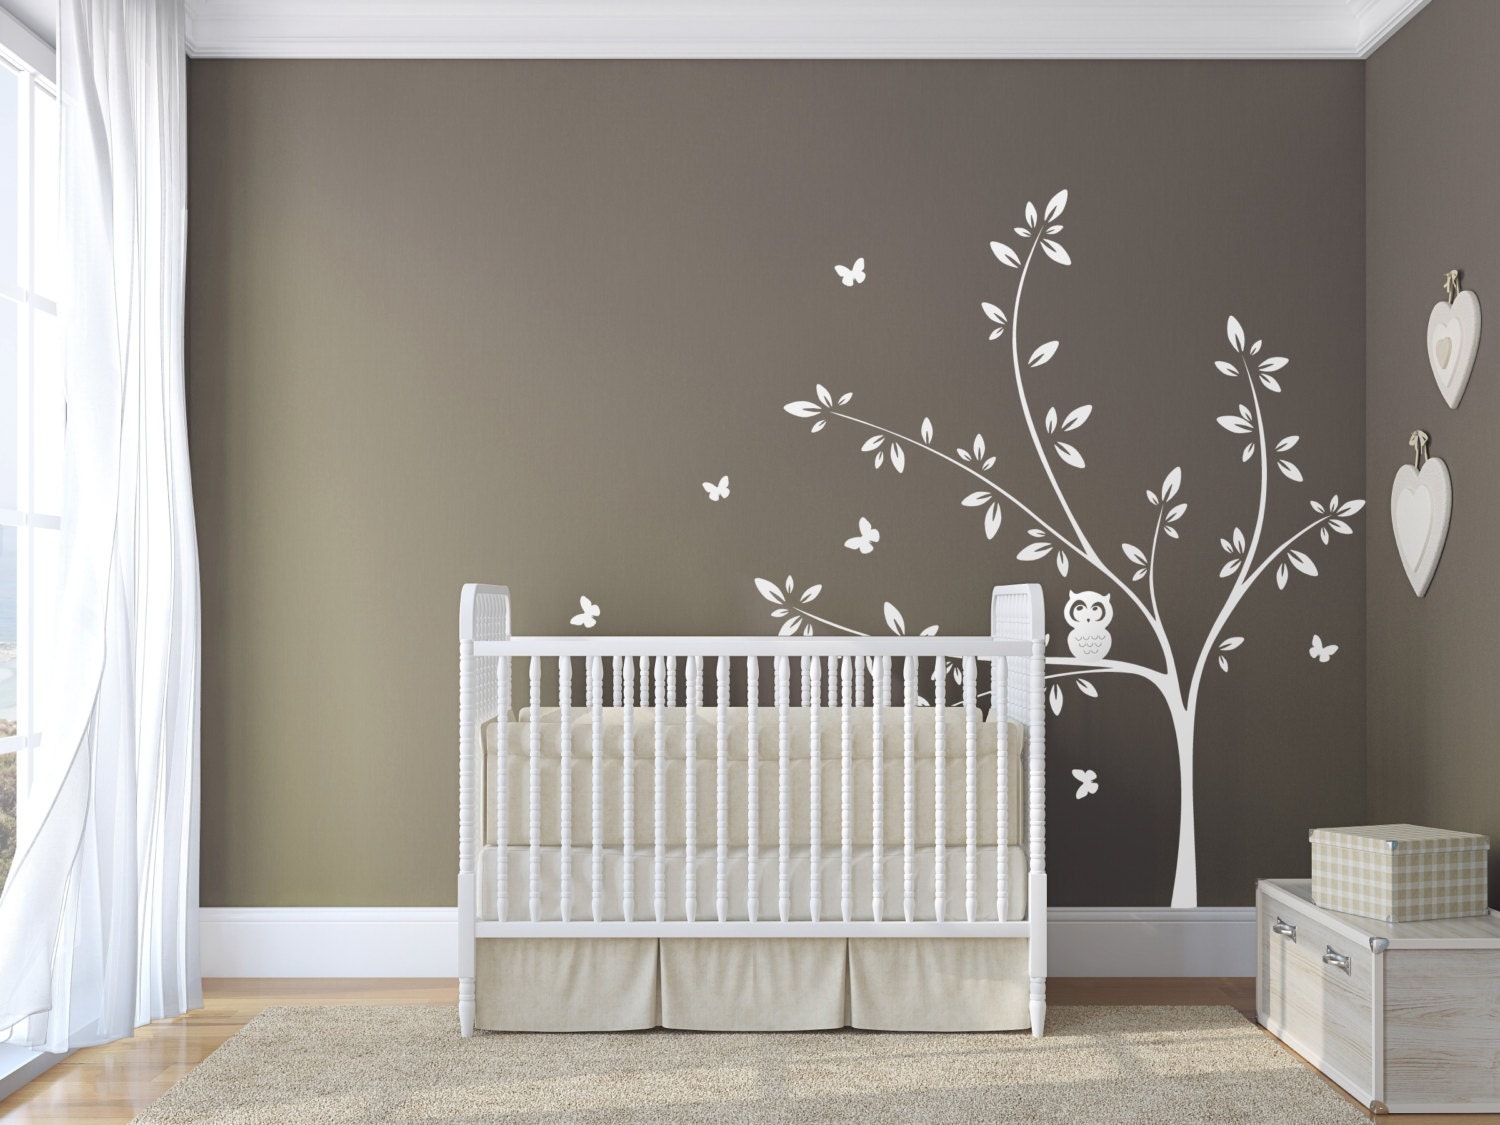 Deco Chambre Bebe Mansardee 2 Of White Tree Wall Decal With Cute Owl And Butterflies Extended